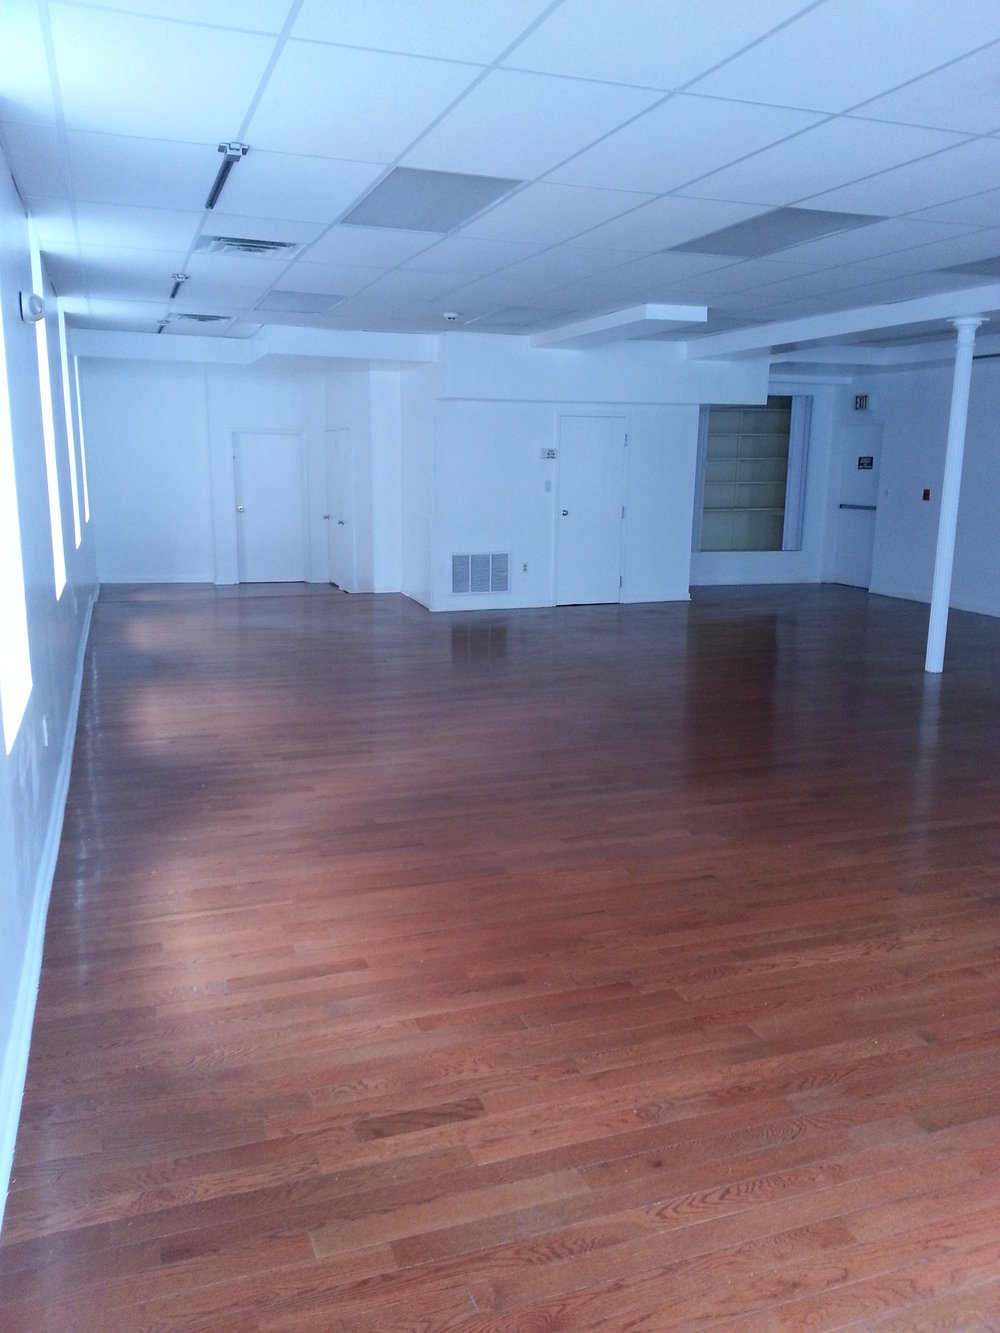 209 Chestnut - 2nd Floor Interior.jpg